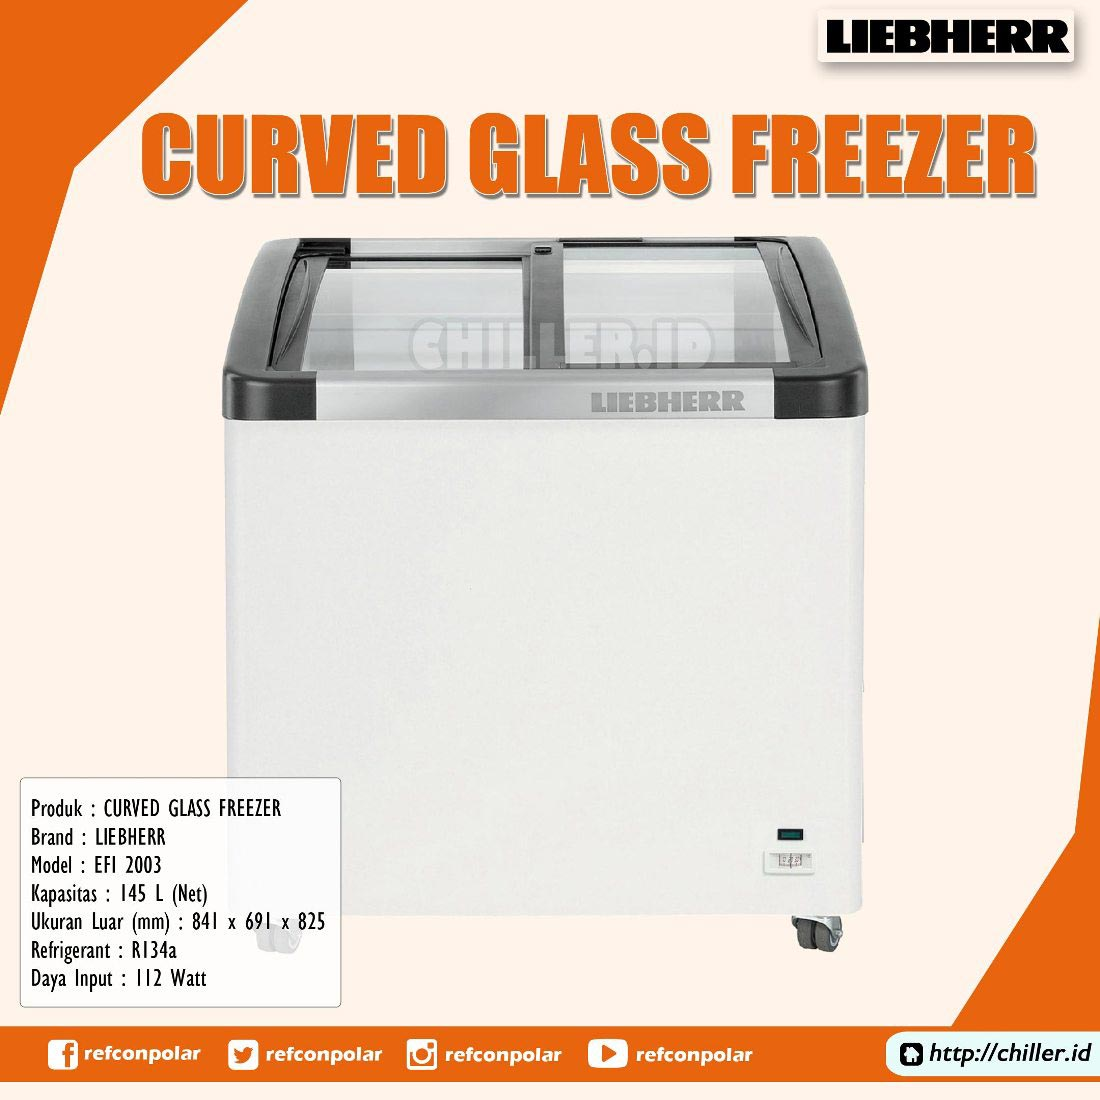 EFI 2003 Liebherr Curved Glass Freezer